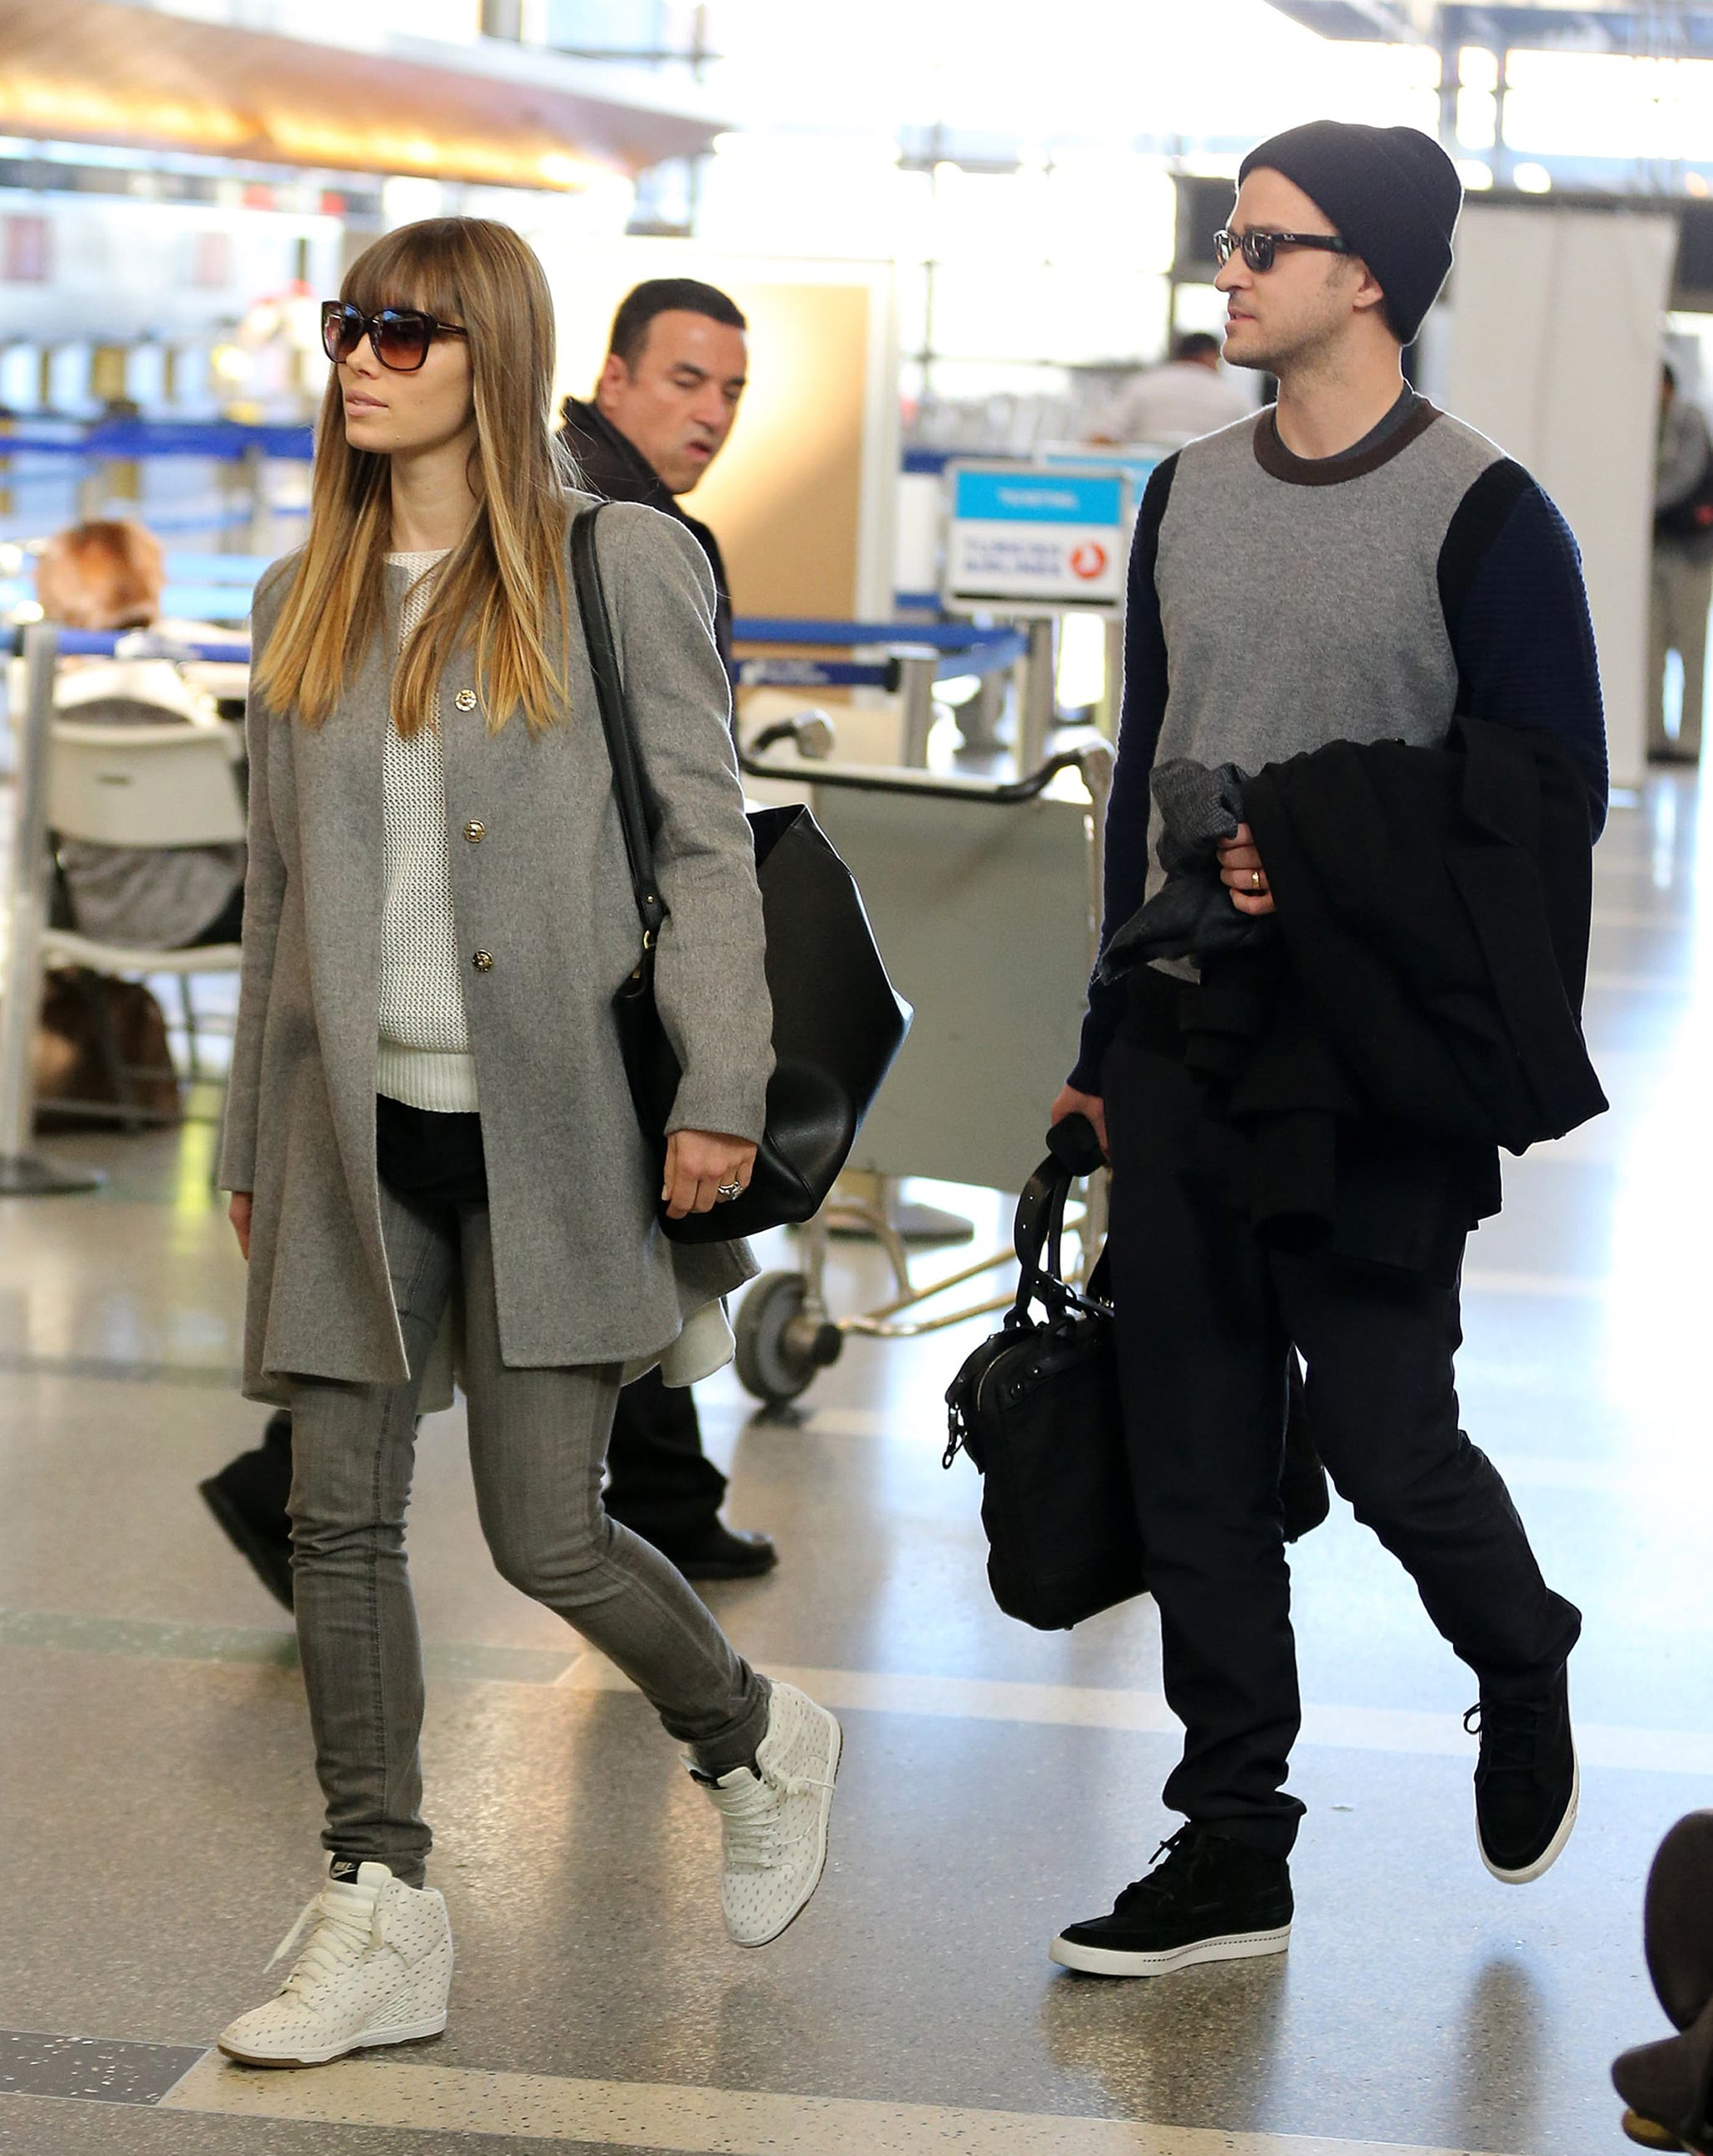 Justin and Jessica Jet Out of LAX Together